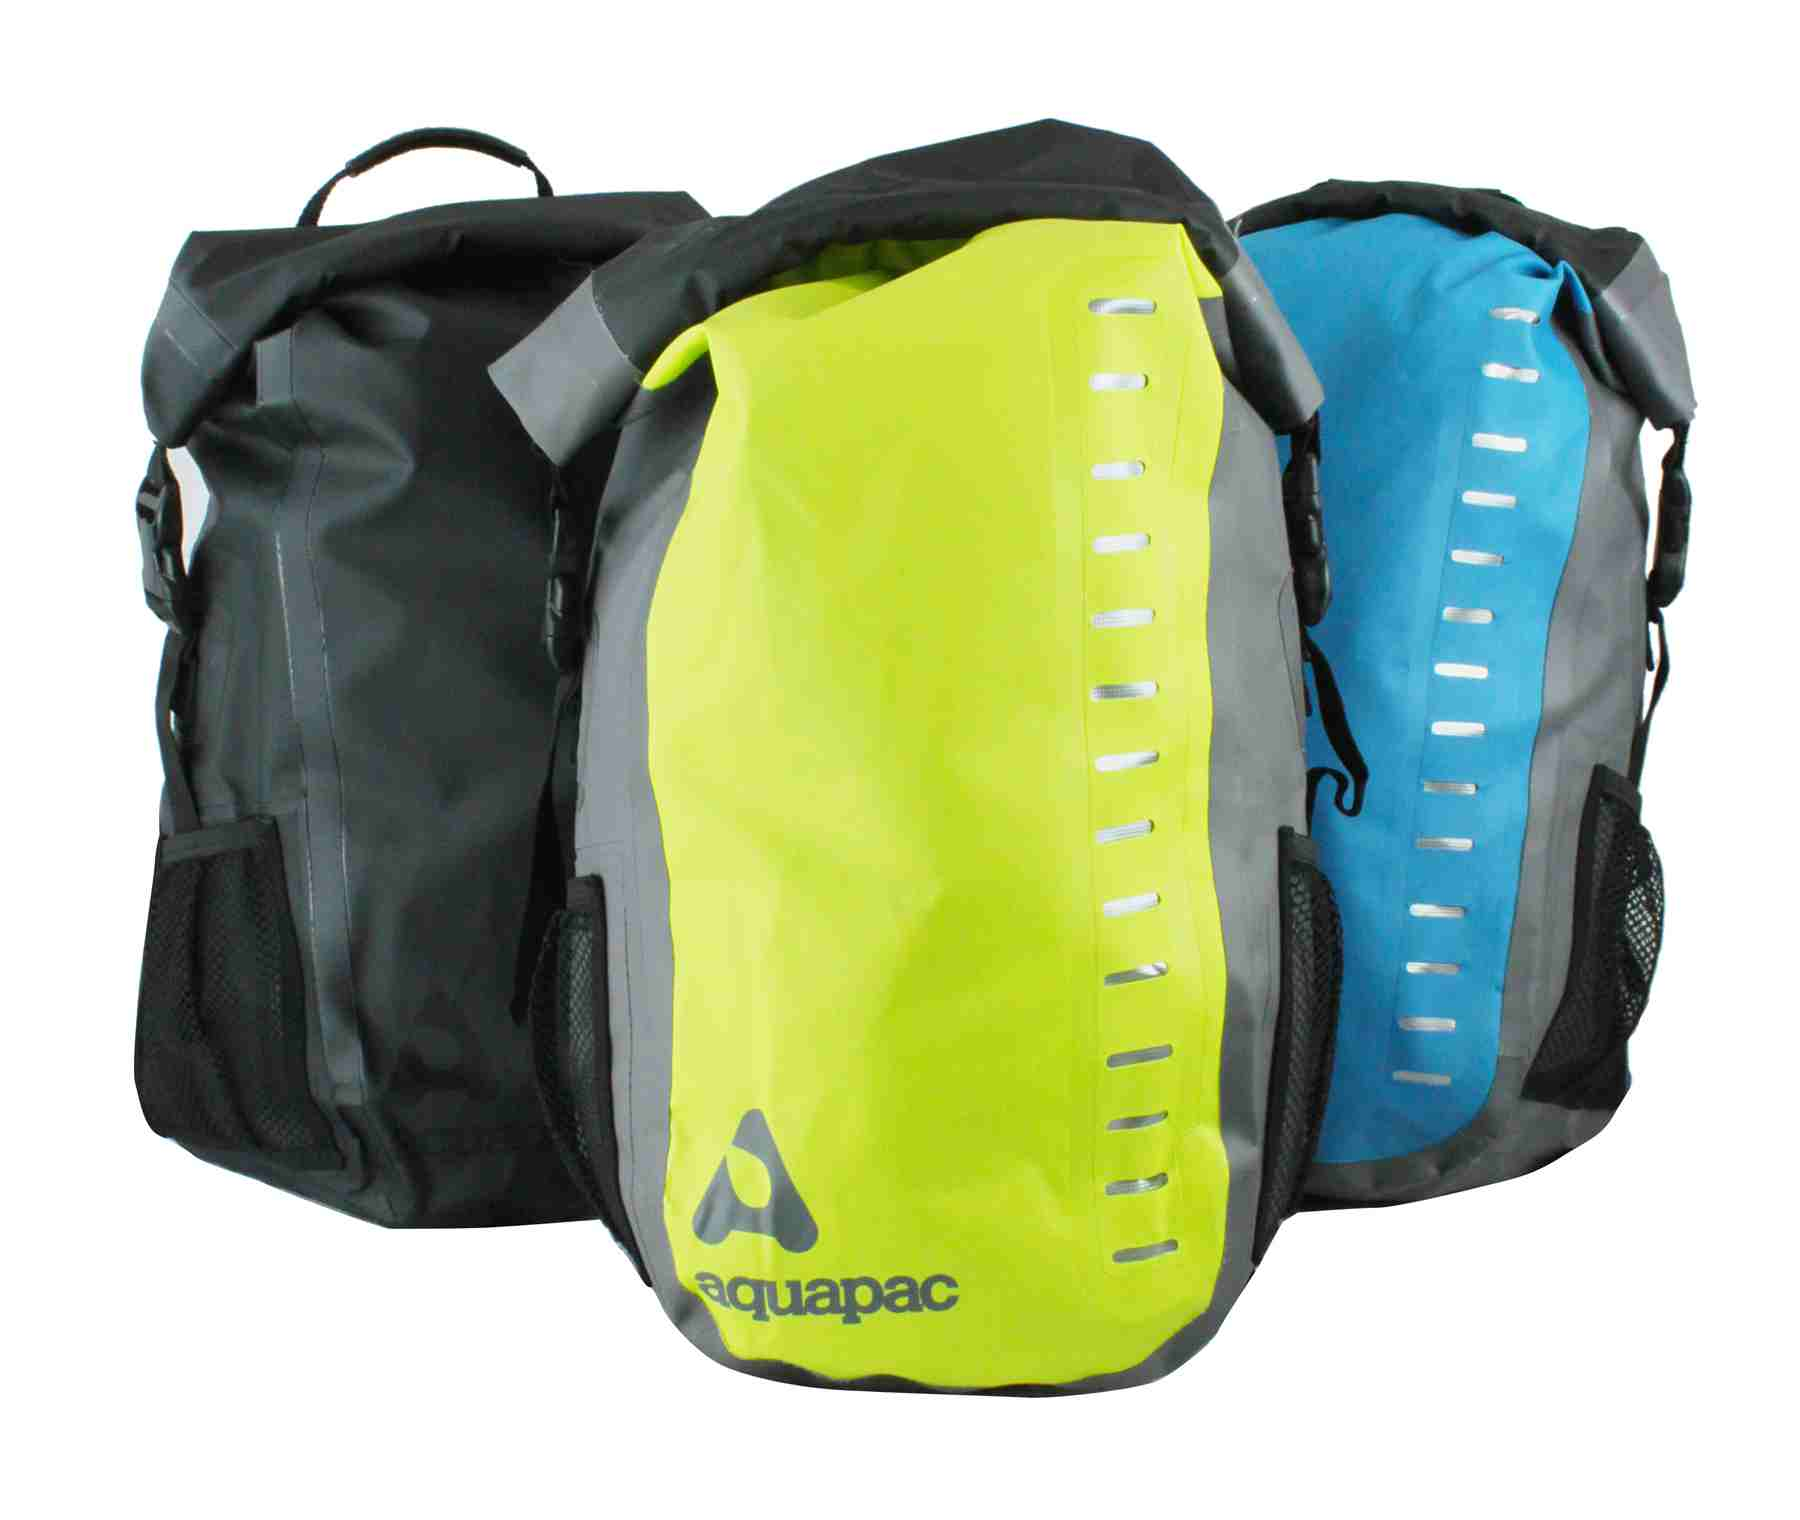 Daypack Toccoa, waterproof, 28 Liters